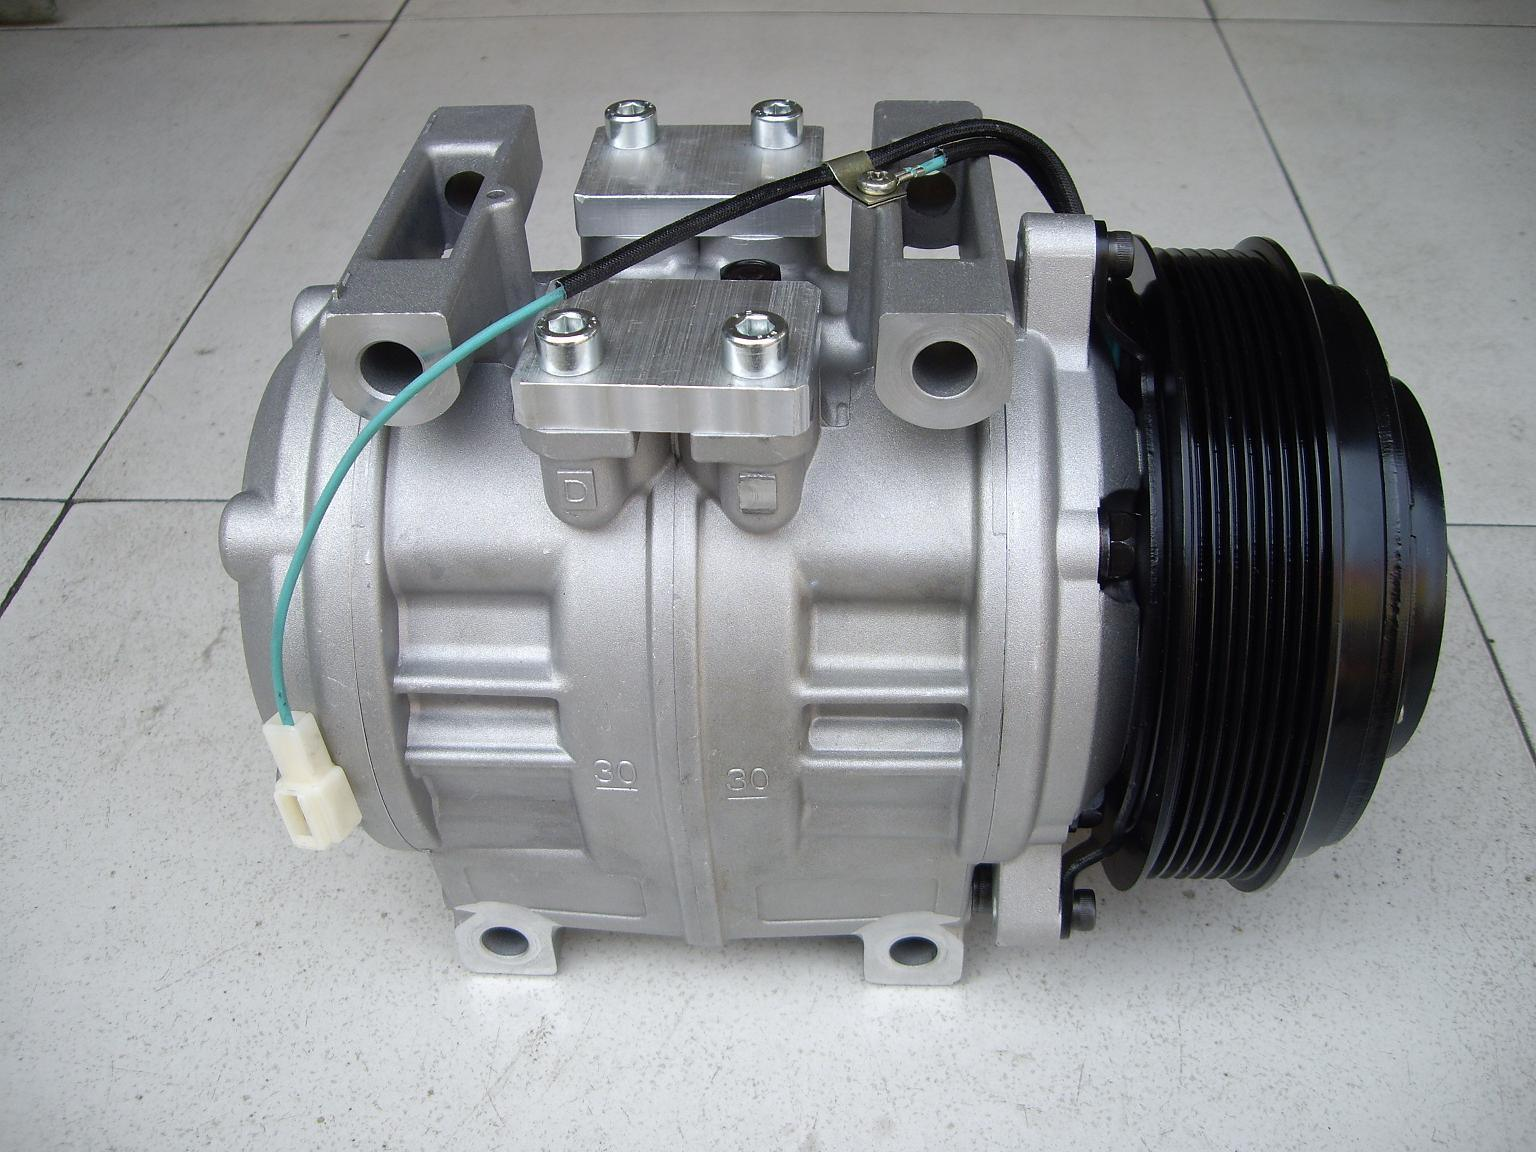 Car Ac Compressor Cost >> How Much Does An AC Compressor Cost « www.Discountacparts.com